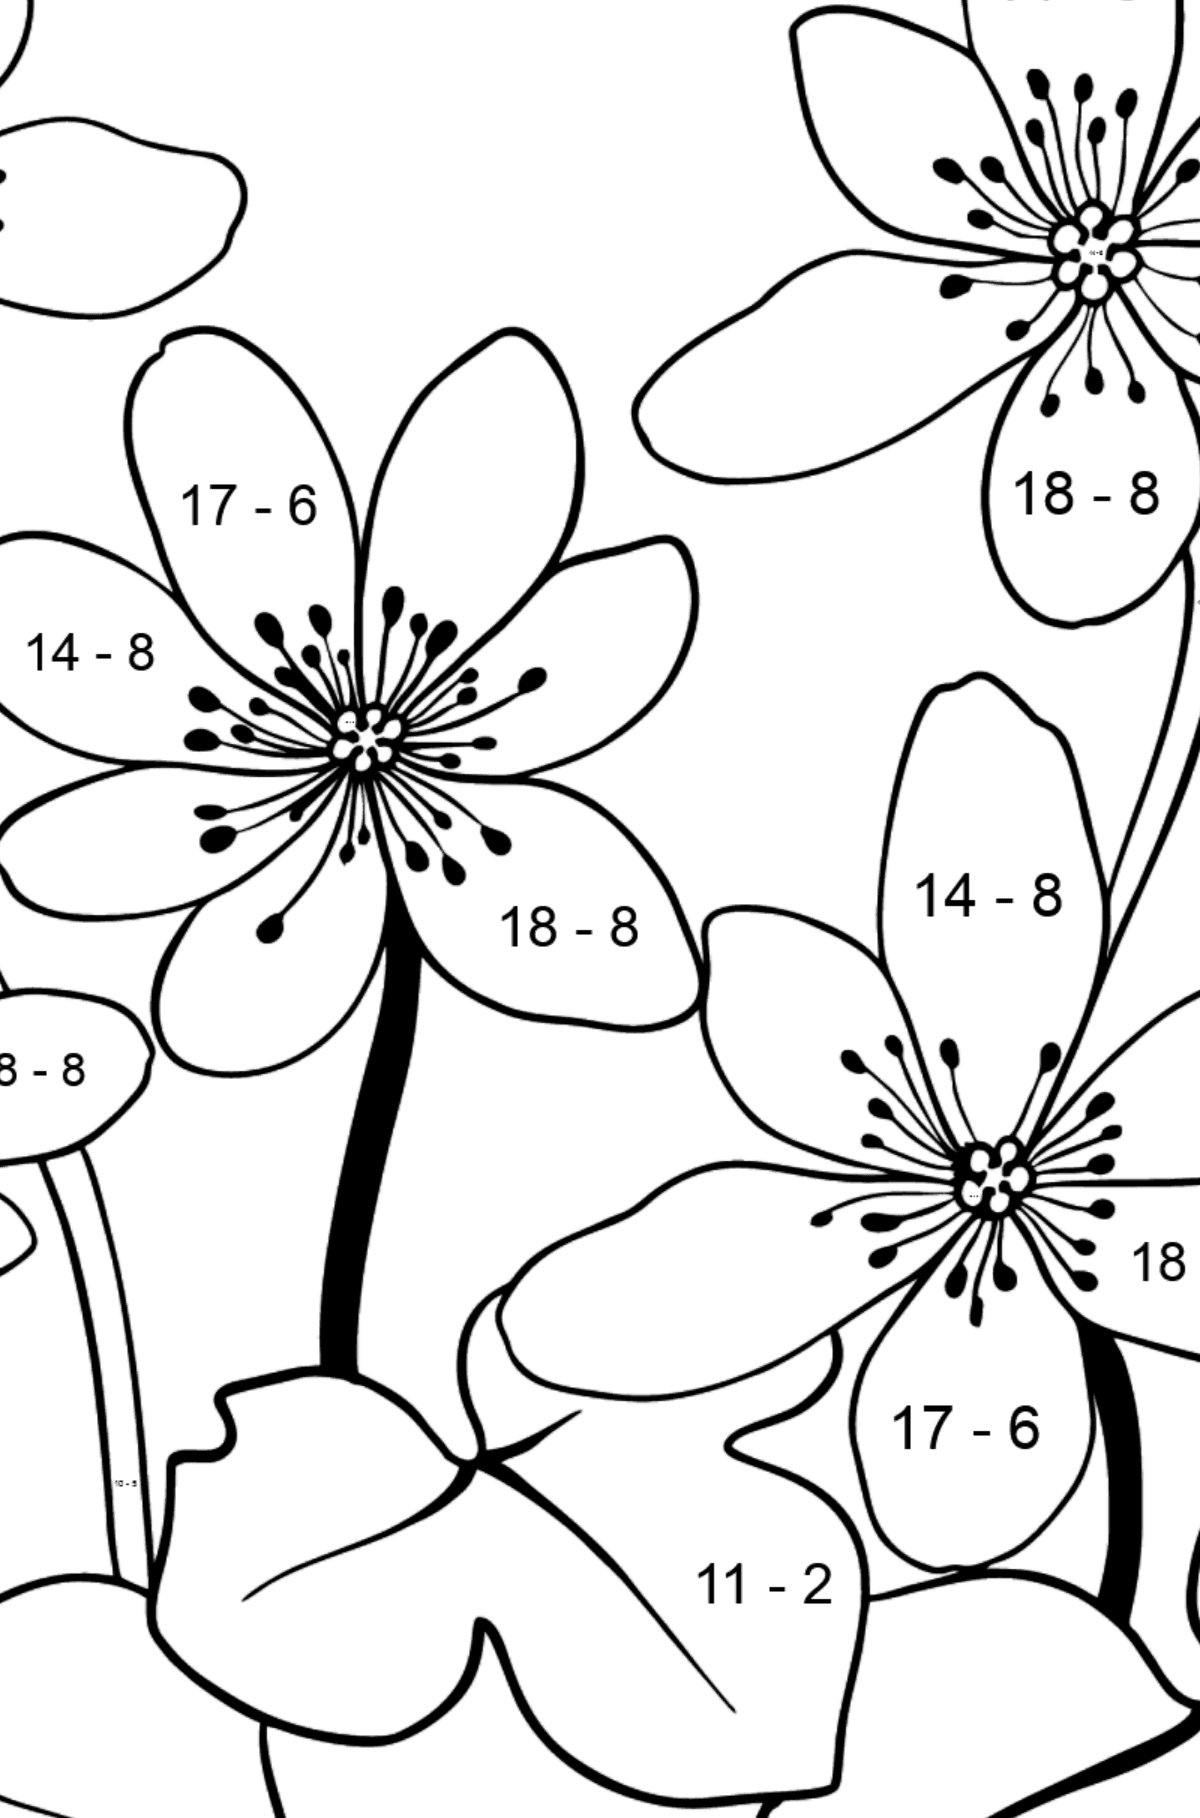 Flower Coloring Page - Hepatica - Math Coloring - Subtraction for Kids